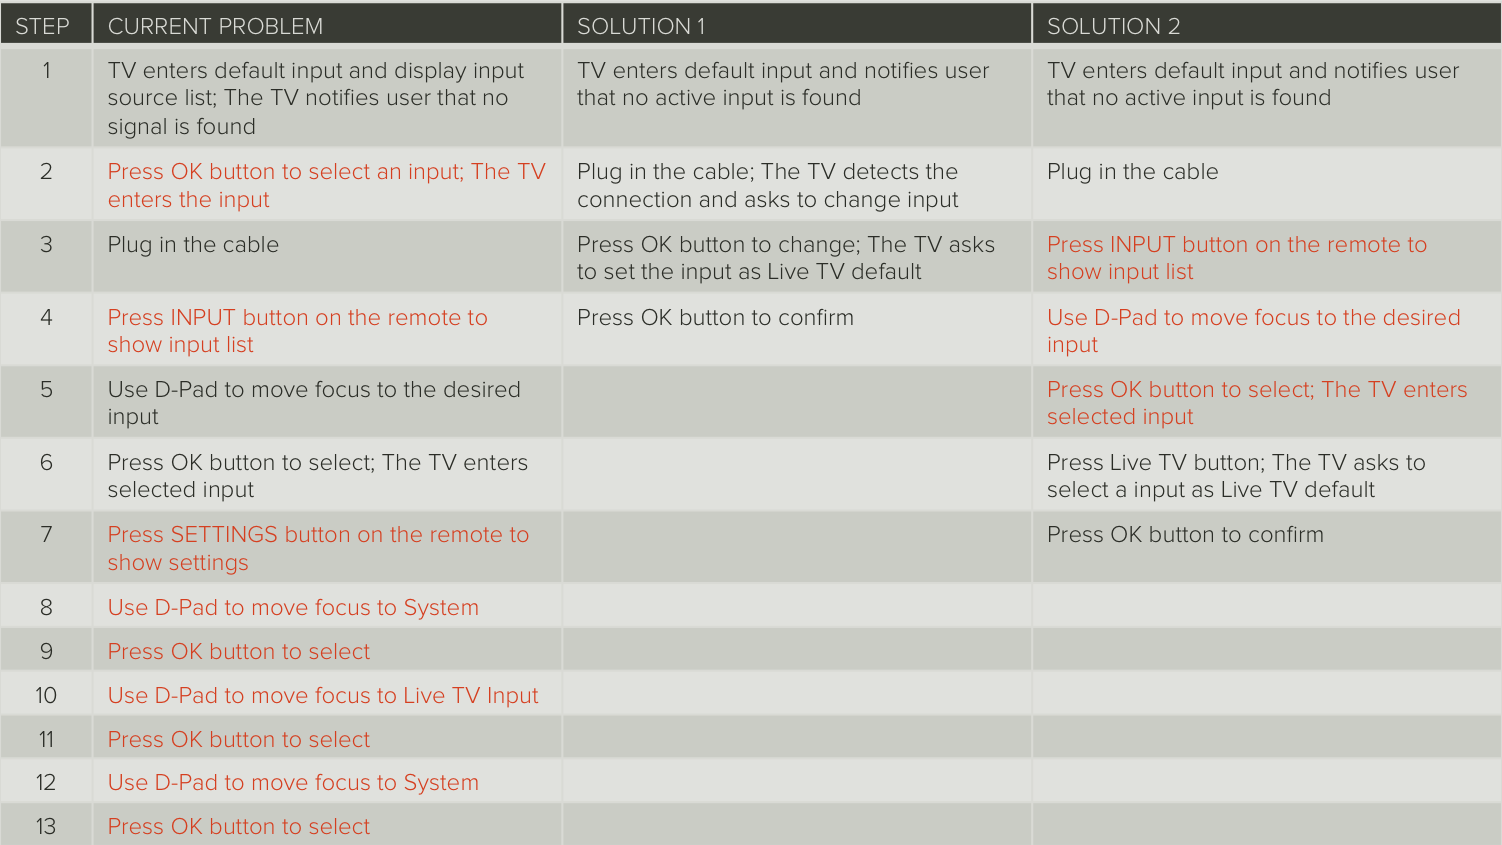 The table of use case comparison elaborates every step of action and helps find the most simple solution.